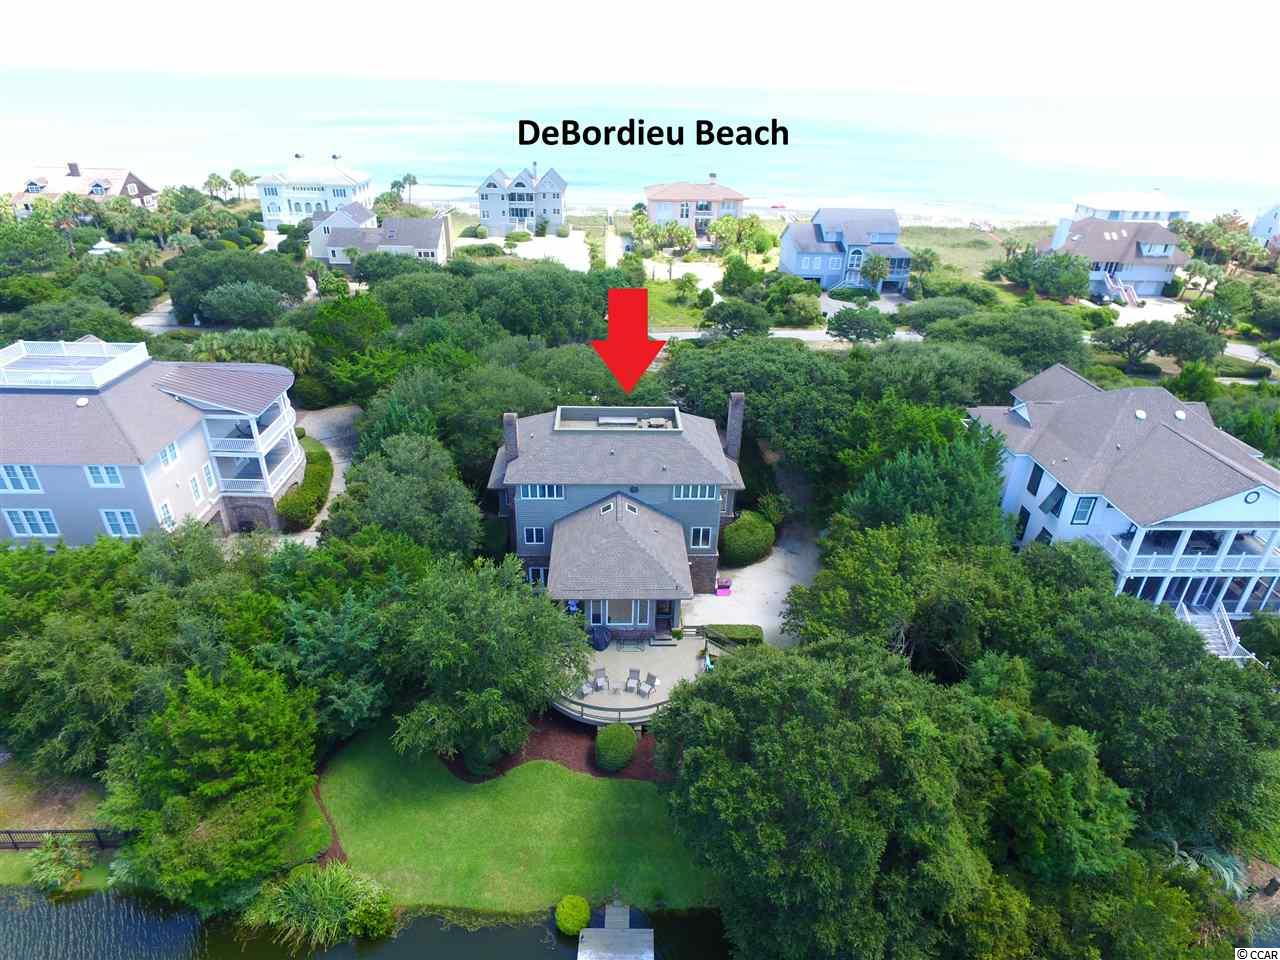 "Second row beach home in prestigious DeBordieu Colony directly across from a beach access. This nearly 4000 heated square foot home is surrounded by majestic live oak trees and has a dock with beautiful lake views! Enjoy fishing, paddle boarding or kayaking from your backyard while just steps across the street to spend the day at the beach. This remarkable house has been kept in impeccable condition. The kitchen has been renovated and has stainless steel appliances including a double oven and granite countertops. Two separate living rooms! One larger room with a fireplace for family gatherings and a smaller living room with custom wood paneling and built ins for a warm and charming setting. The back has a large deck with beautiful lake views. Downstairs is a garage converted to a ""game/activity room"" for entertaining! Huge master suite with a deck looking out to views of the Atlantic Ocean. Rooftop deck with gorgeous ocean and DeBordieu community views! DeBordieu Colony is a gated, beachfront community located between Georgetown and Pawleys Island. Residents enjoy riding their golf carts to the beach or put their boat in at the community boat dock for a day in North Inlet. Community residents are eligible to join the DeBordieu Club. The club offers world-class golf, tennis, onsite dining, tiki bar, access to oceanside pools, fitness center and many other social activities! DeBordieu is just a 60 mile drive to historic Charleston, SC or a 35 mile drive to the attractions of Myrtle Beach. This community is one of a kind. Don't miss this opportunity to live like you are on vacation!"